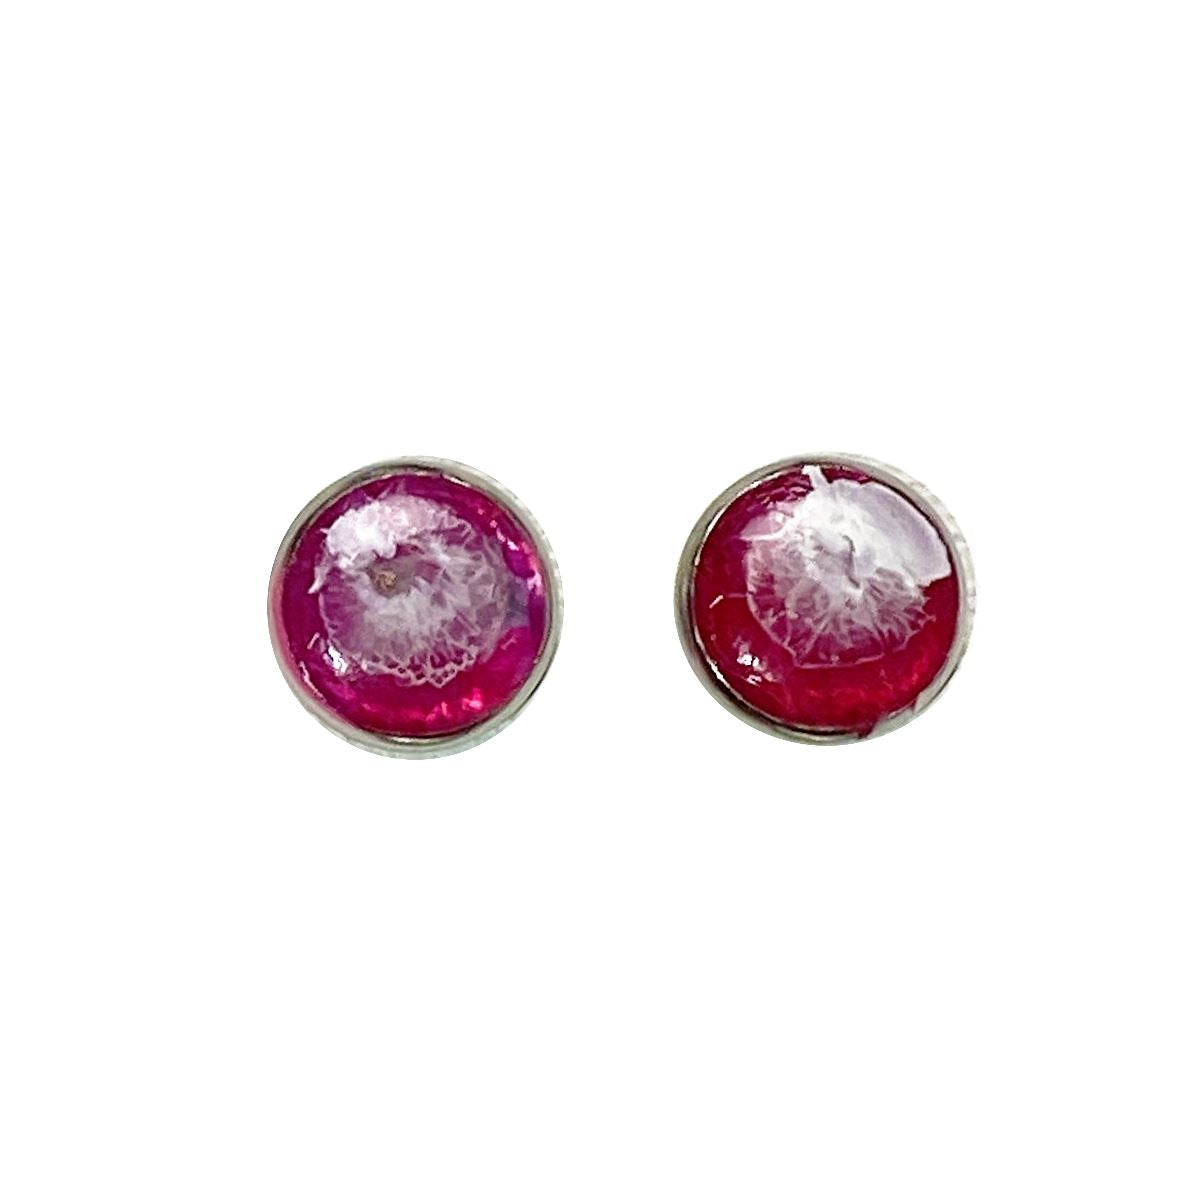 Color Study - pink white 12mm stud earrings Deanna Dot Store